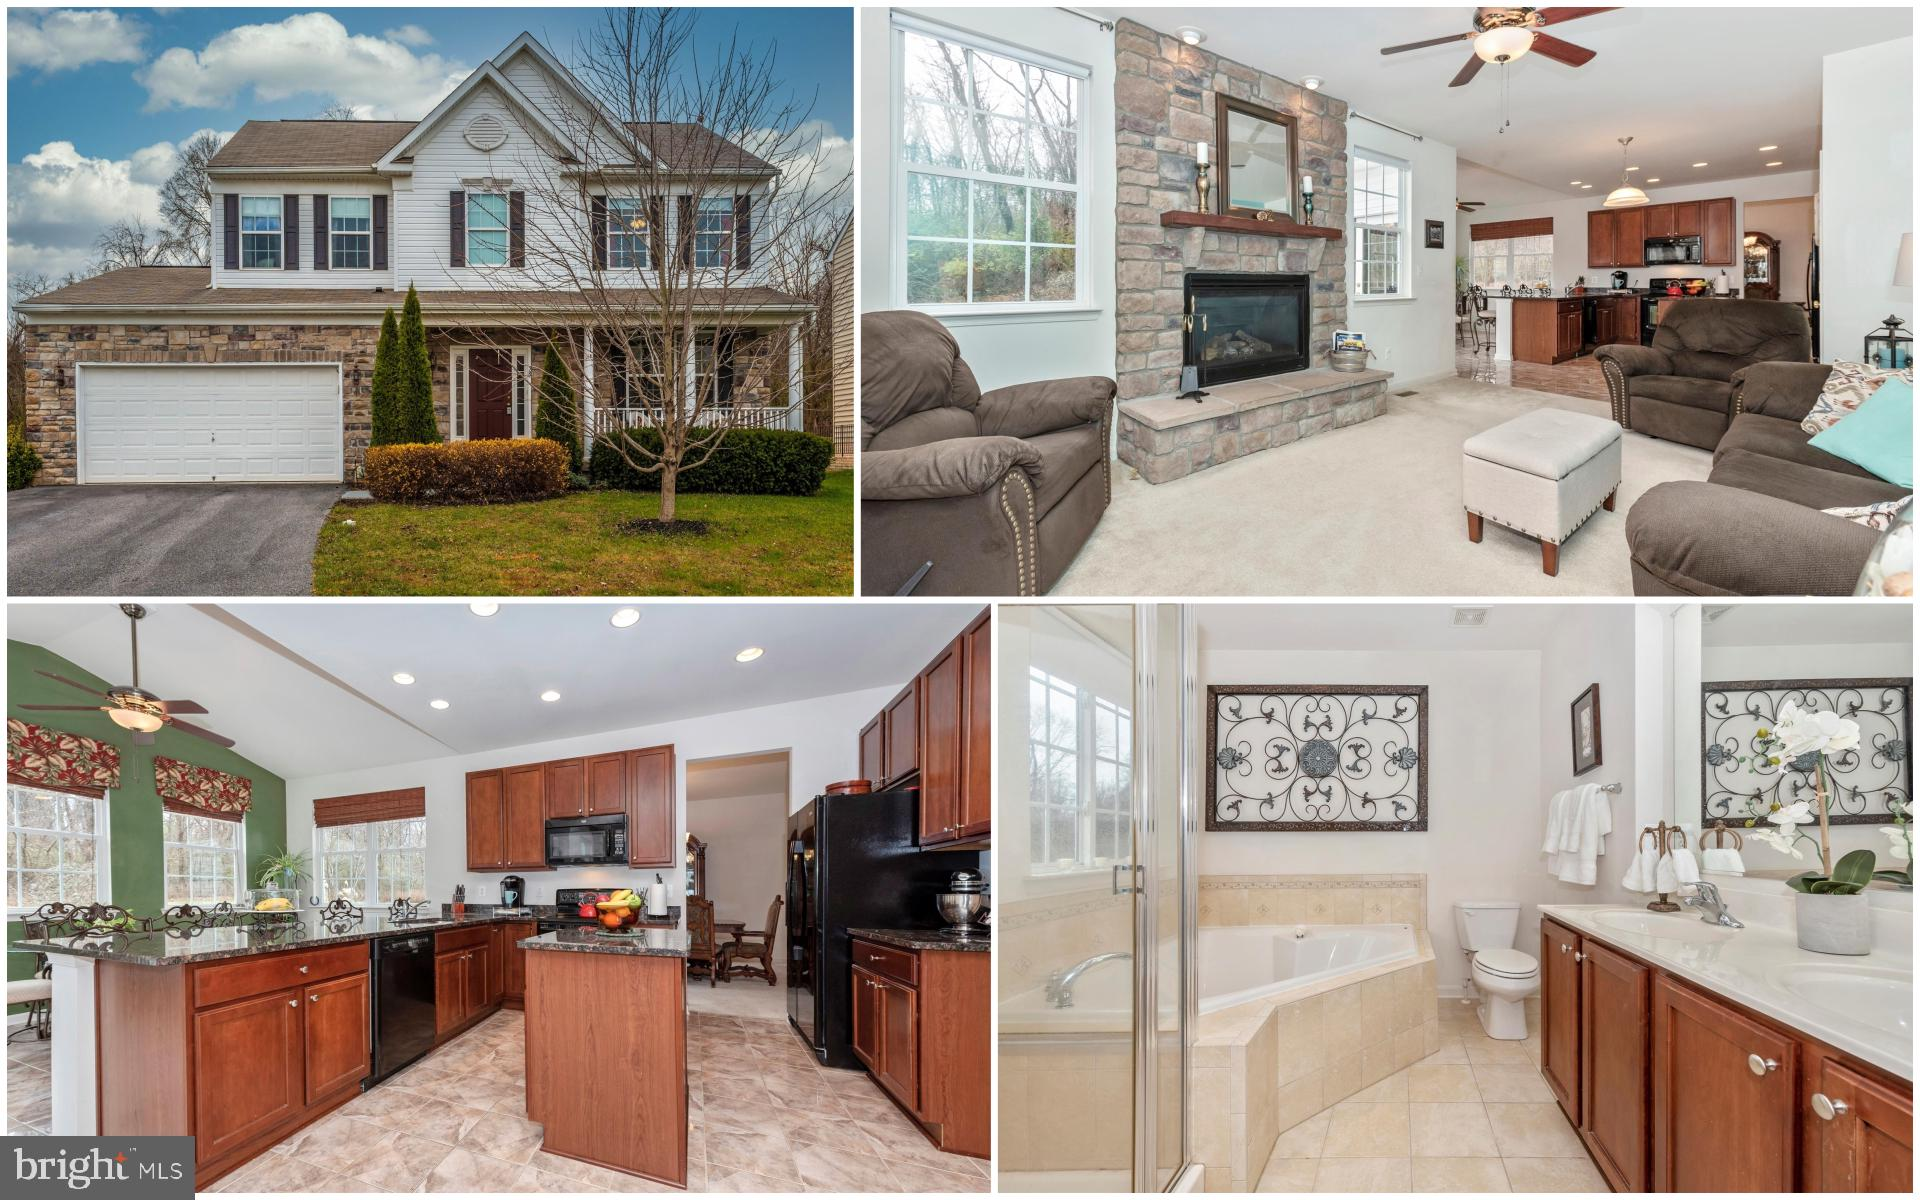 Prepare to fall in love! Stunning stone front Colonial offers 3 beds, 2.5 baths and an attached 2 ca